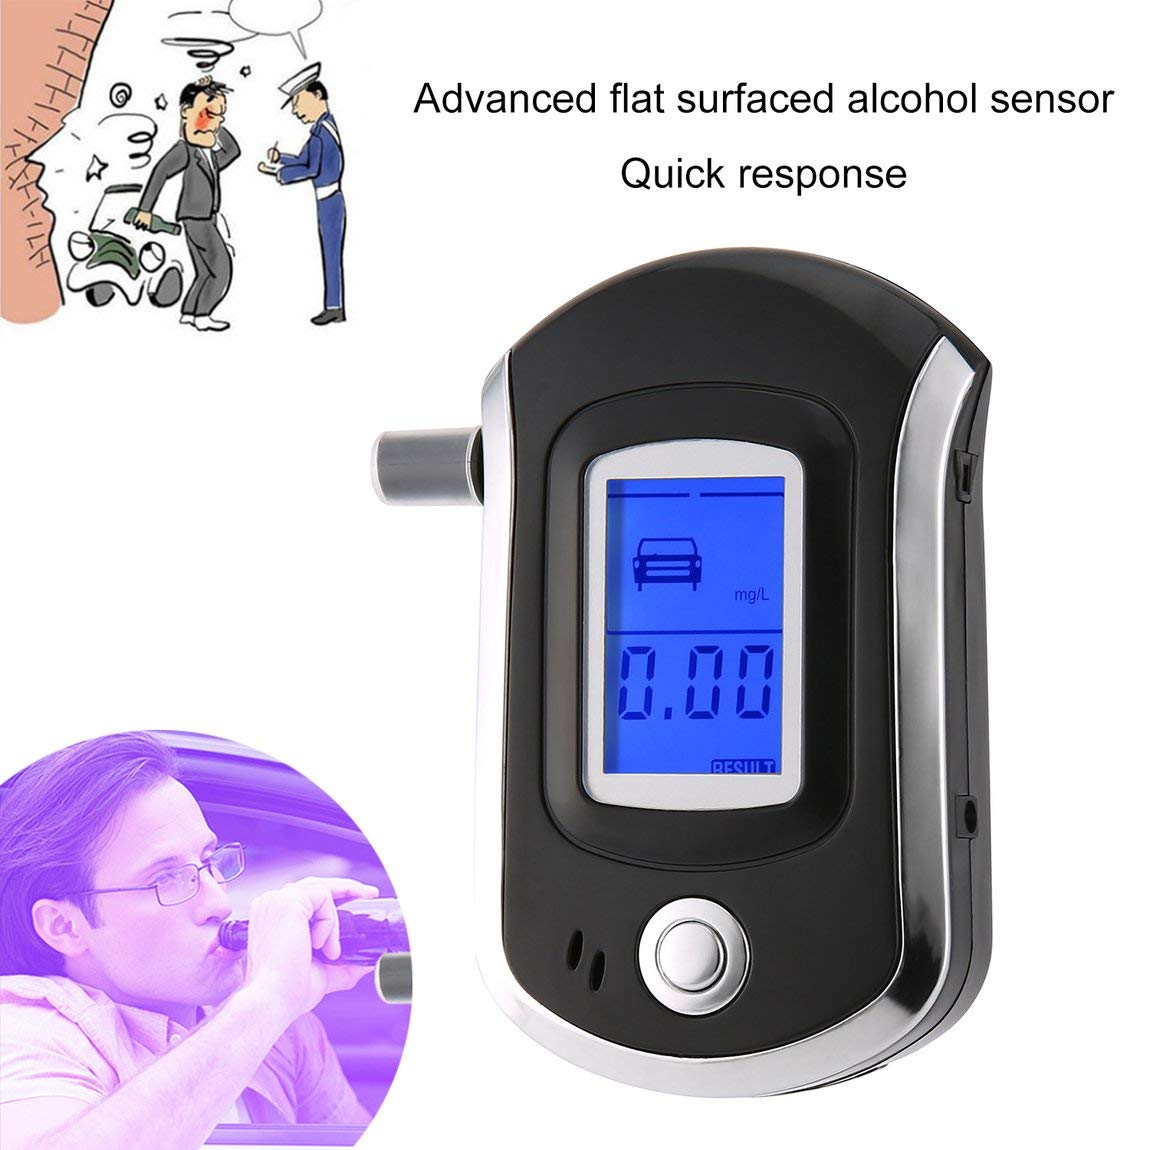 color: black Digital Breath Alcohol Tester LCD Breathalyzer Analyzer With 5 Mouthpiece High Sensitivity Professional Quick Response AT6000 /&